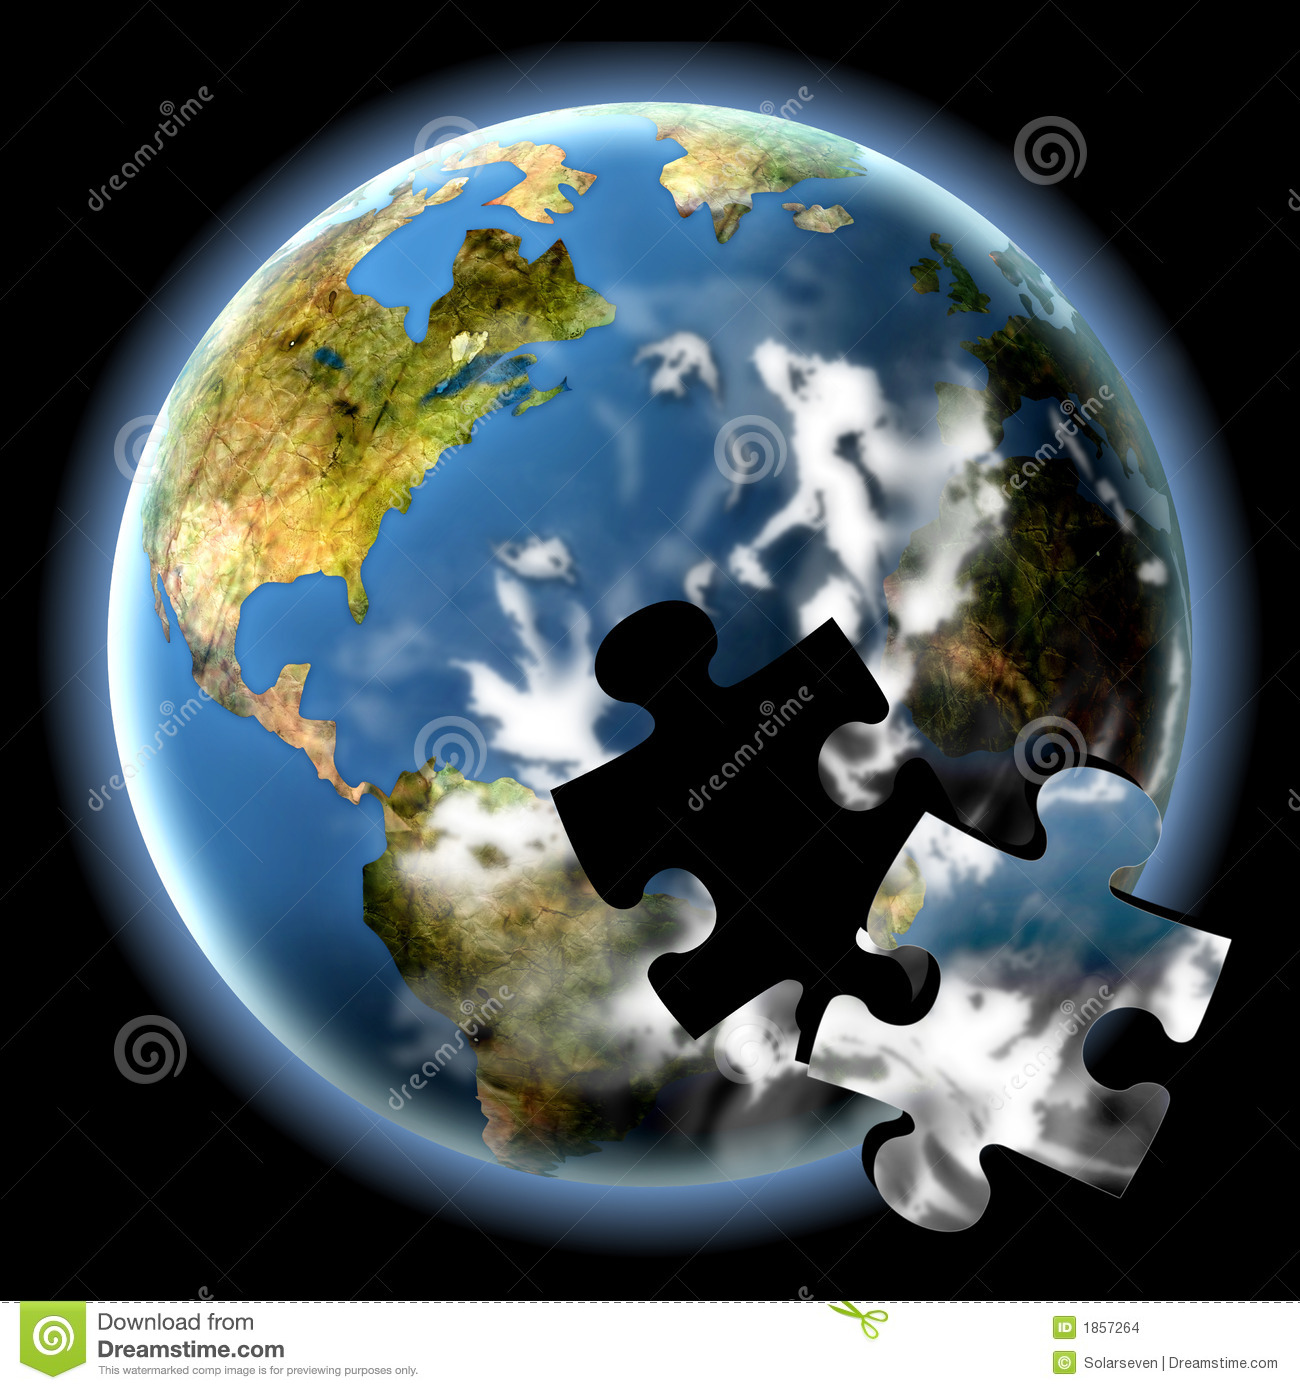 The Earth Puzzle